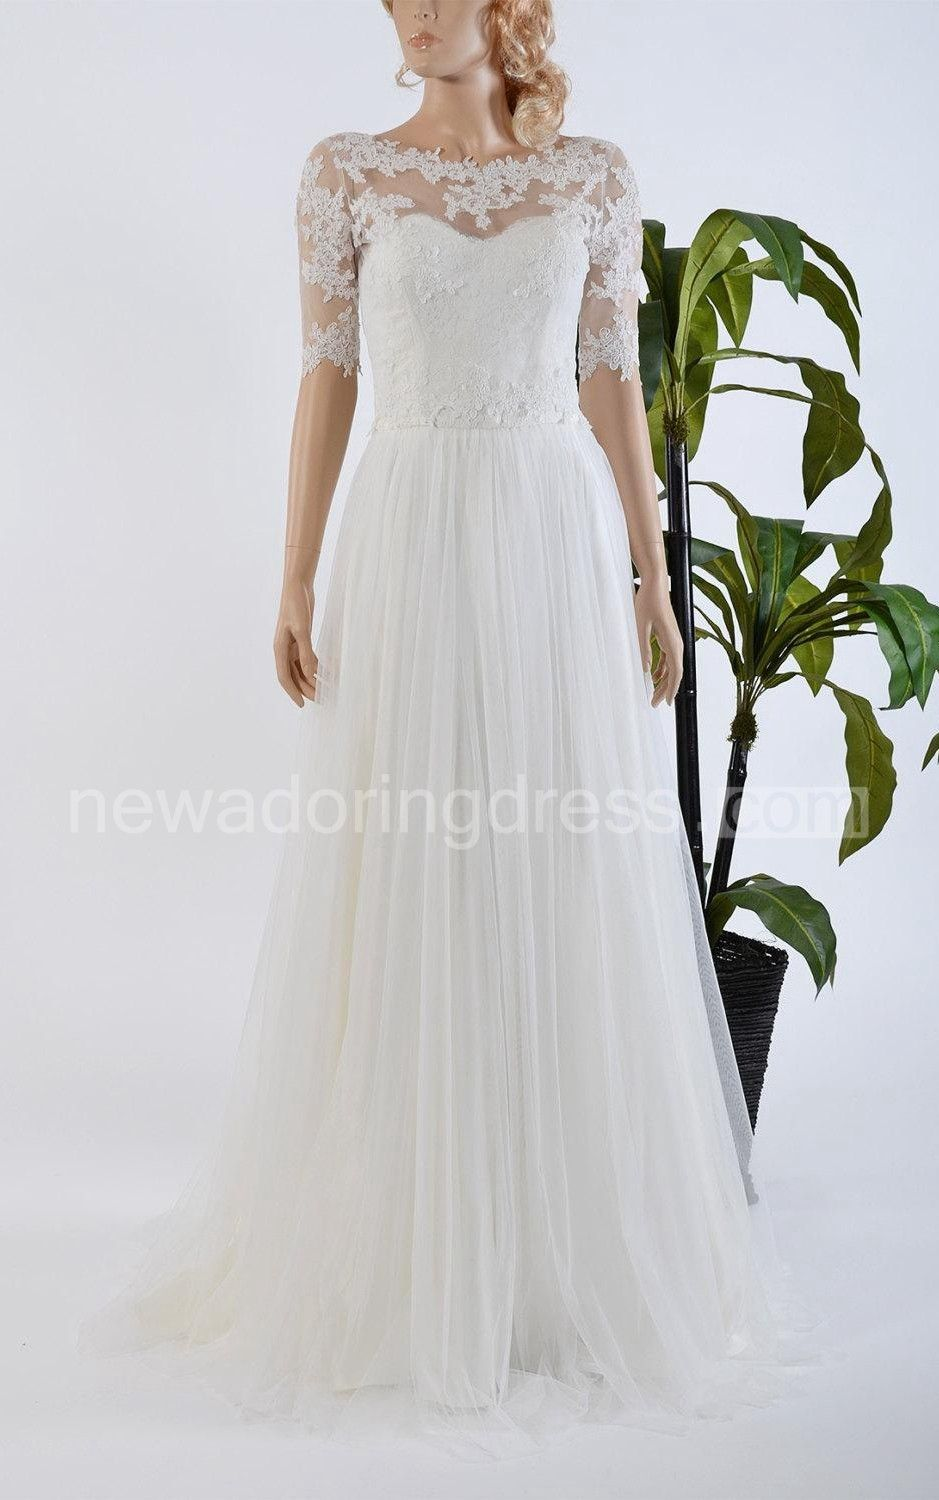 Jewel neck long aline wedding dress with lace bolero on tulle